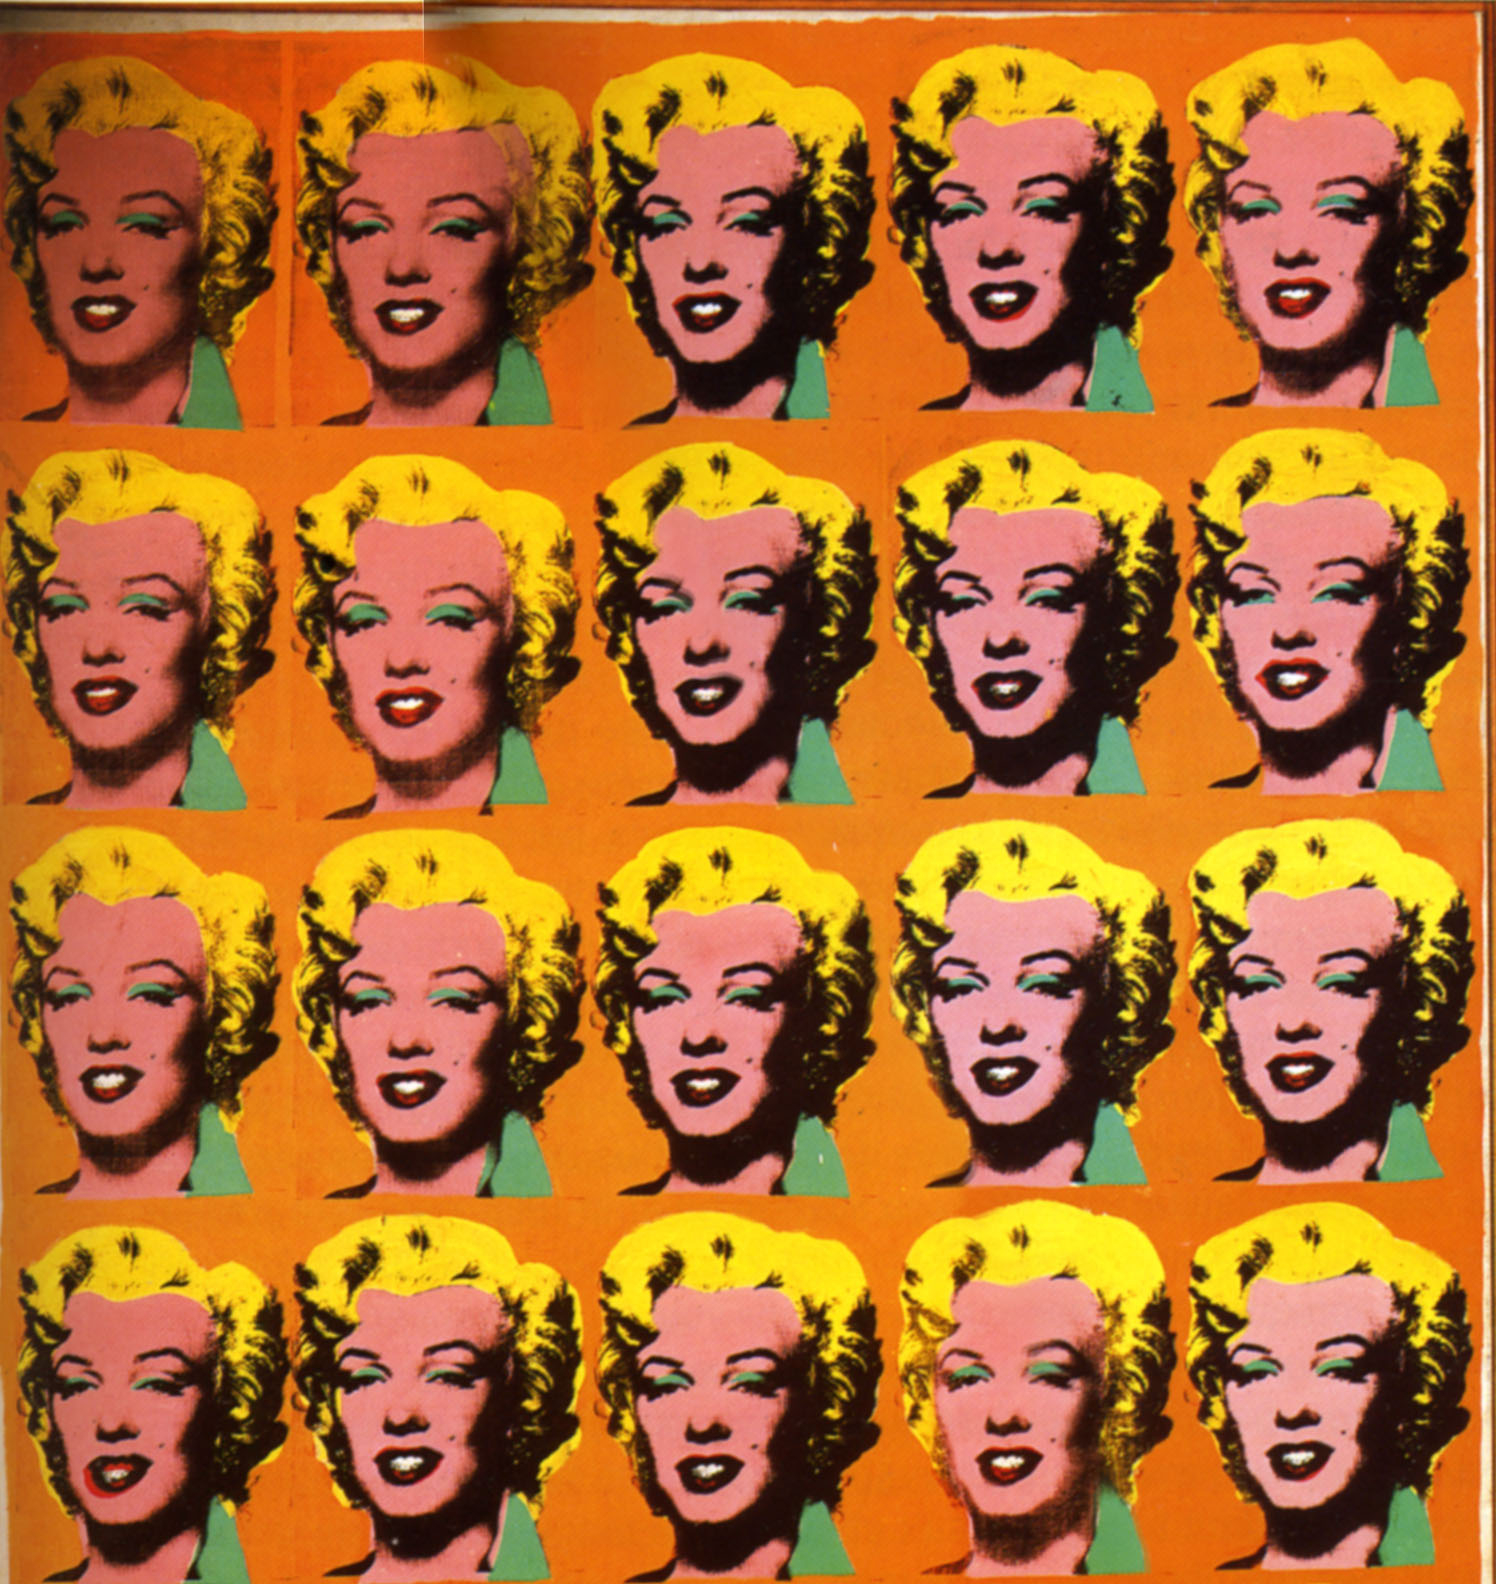 Excerpt from Andy Warhol's Marilyn Diptych